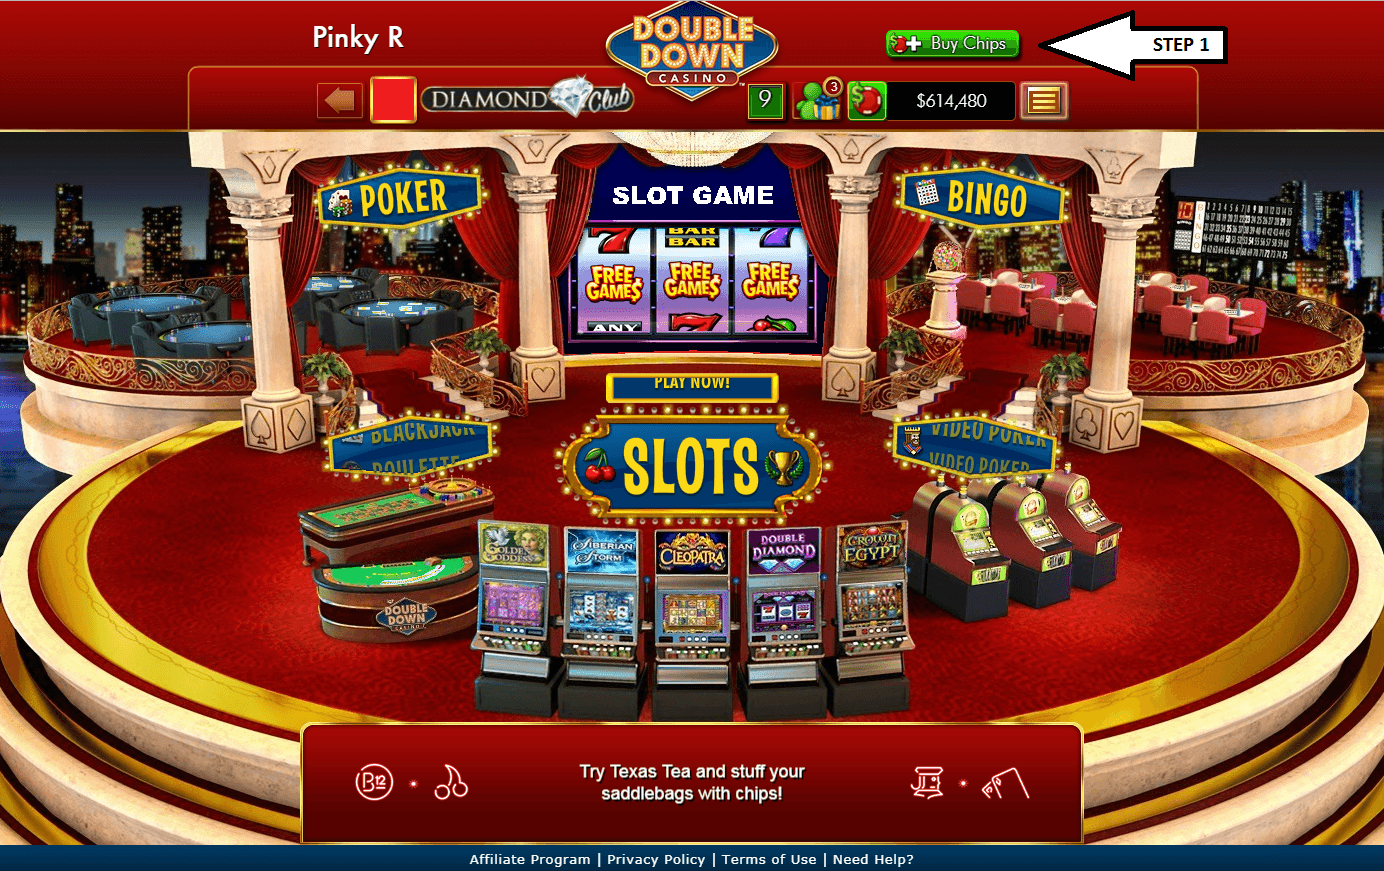 double down casino code